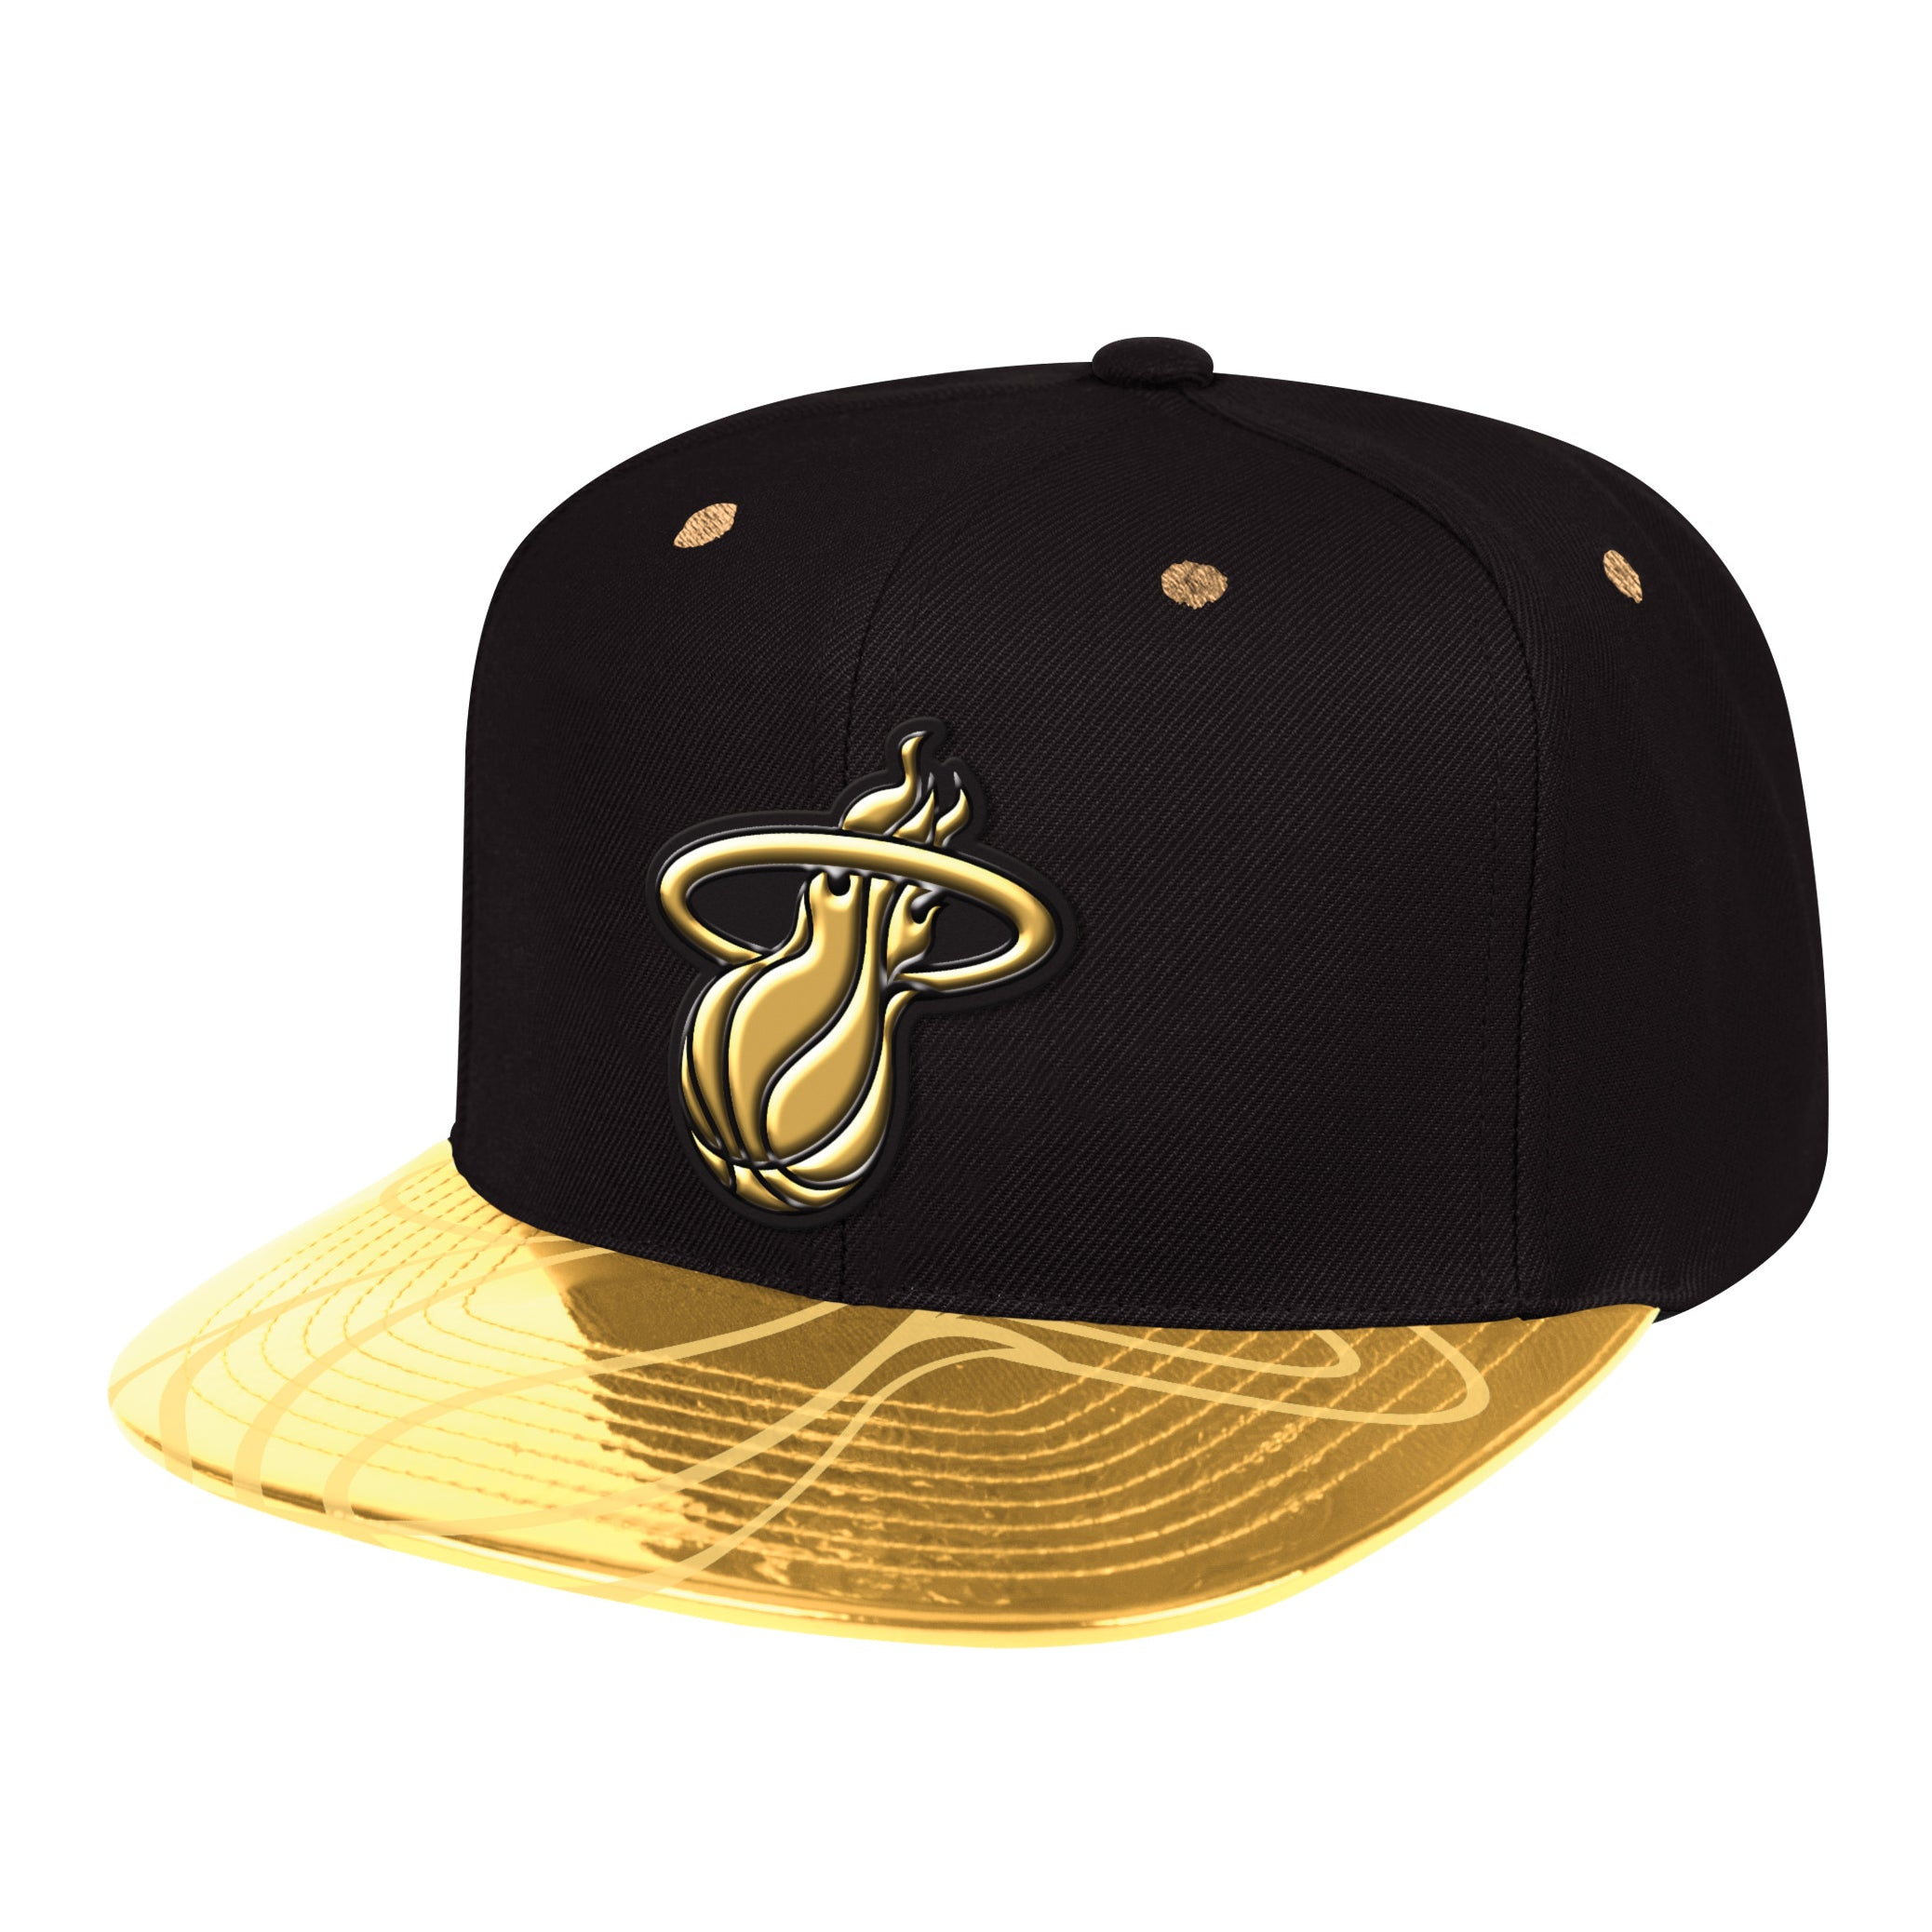 big sale e18c0 4d760 ... black gold nba on court 59fifty fitted hat fa010 7ca19  new zealand mitchell  ness miami heat gold standard snapback featured image 10ee4 d2e03